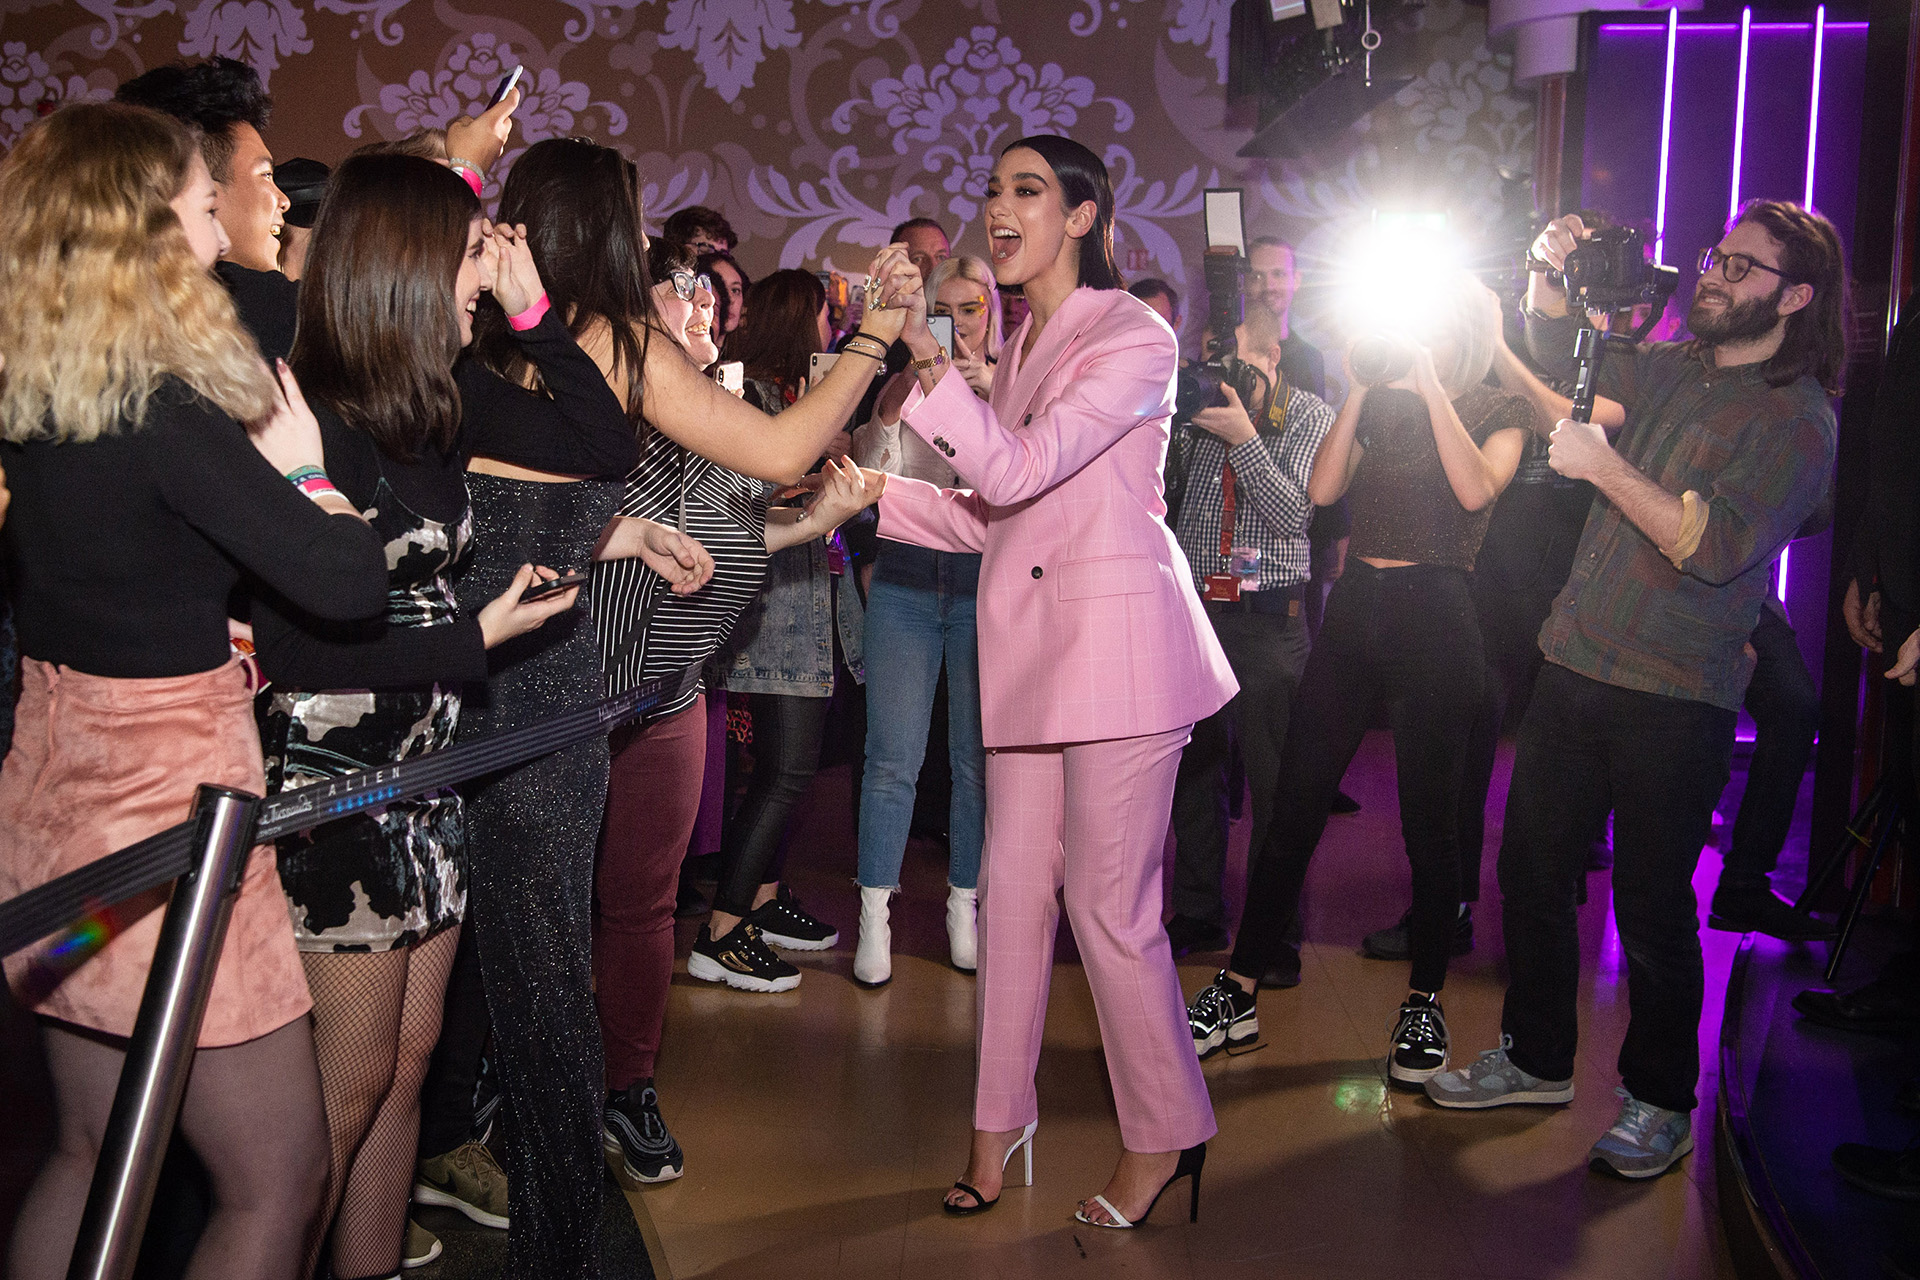 Dua Lipa's surprise appearance at Madame Tussauds